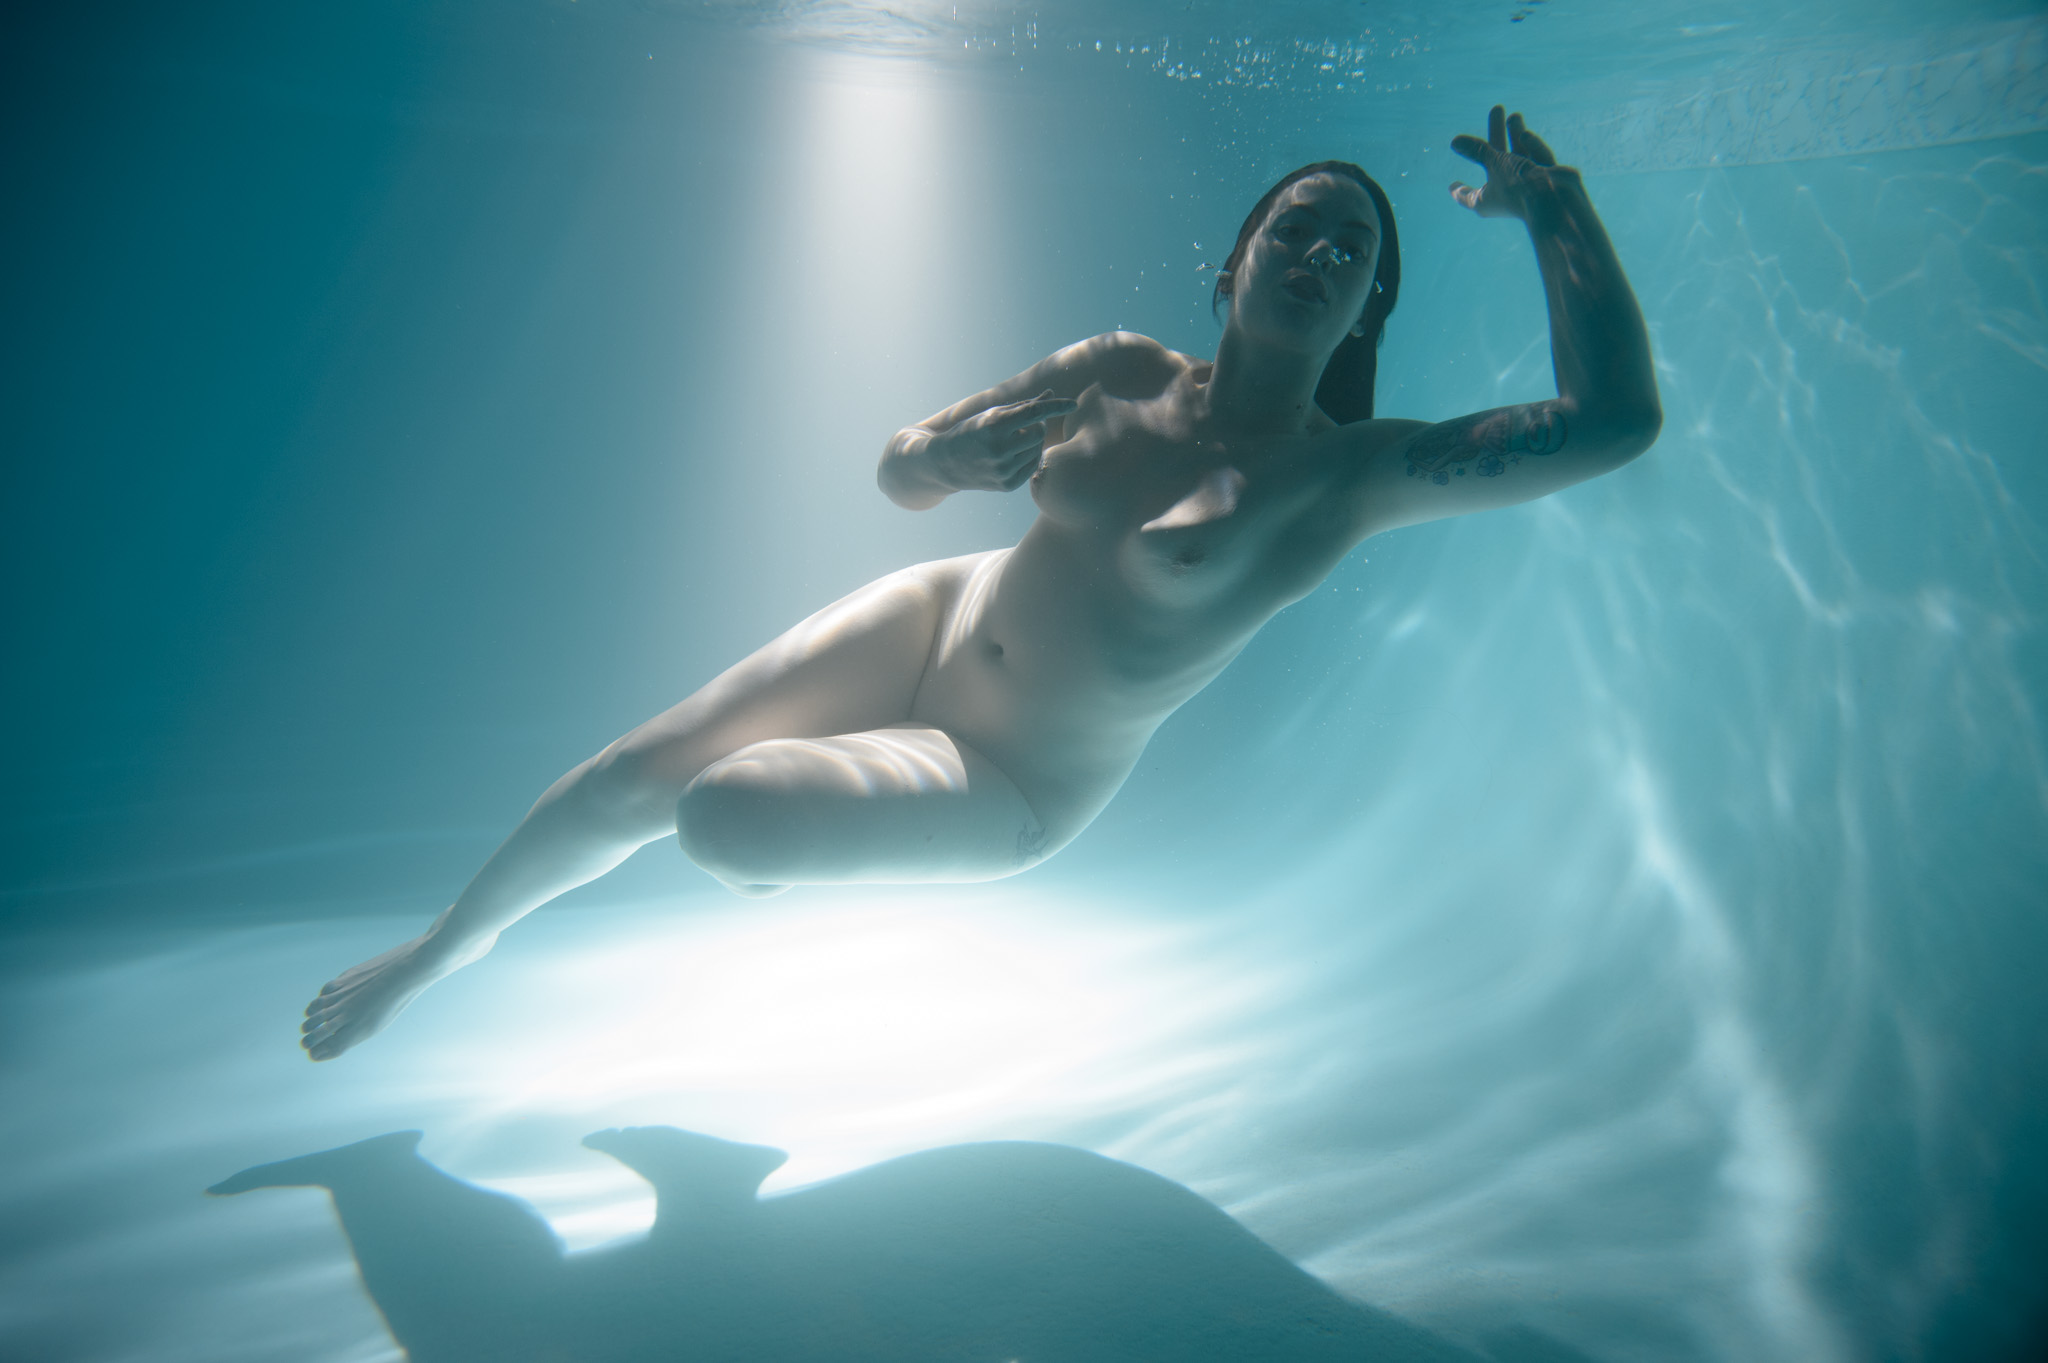 holding-naked-women-underwater-movies